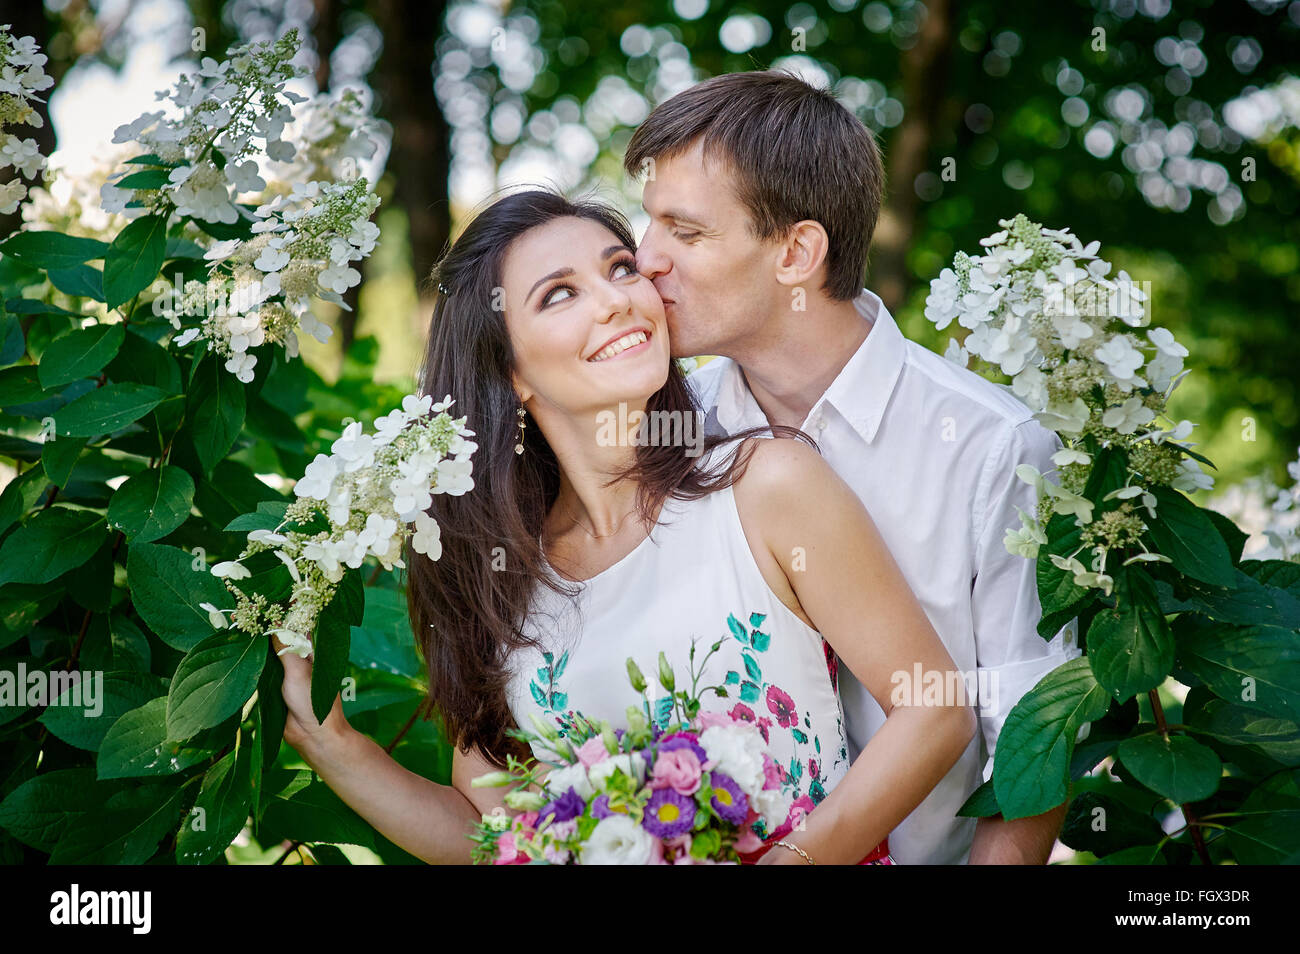 elegant groom with his happy bride kisses in the park - Stock Image